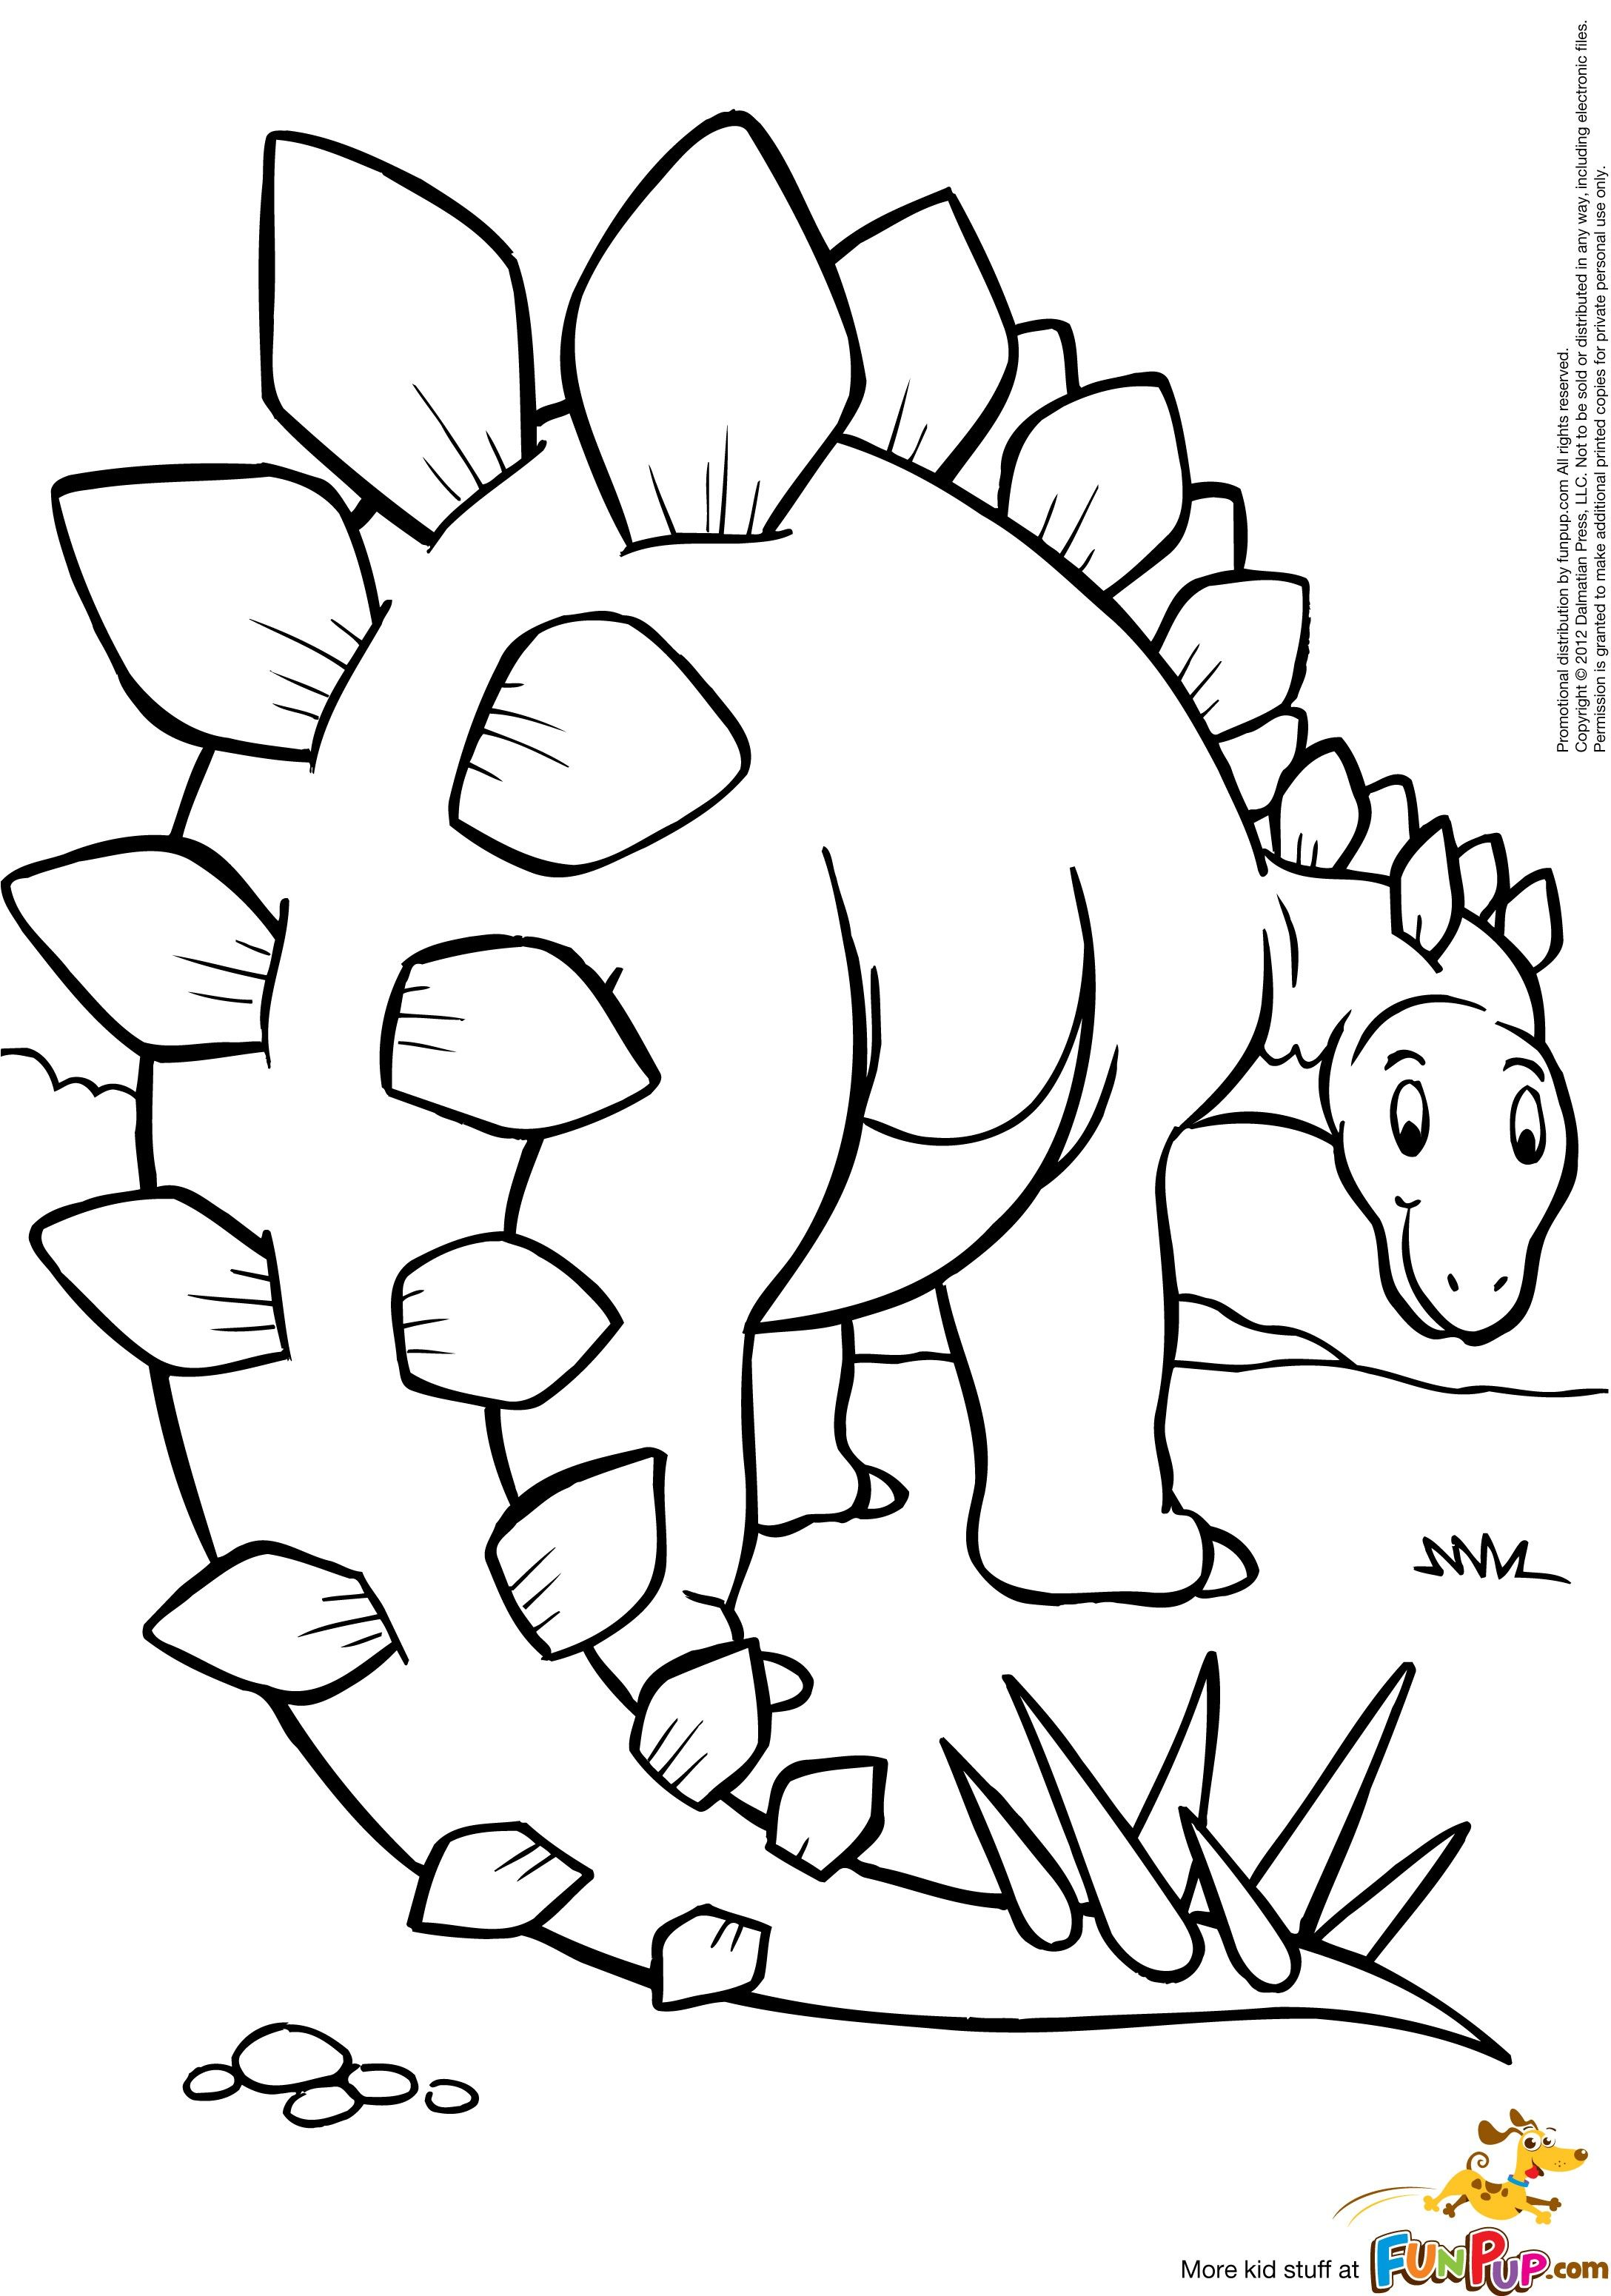 Dinosaur Coloring Pages Stegosaurus Trend